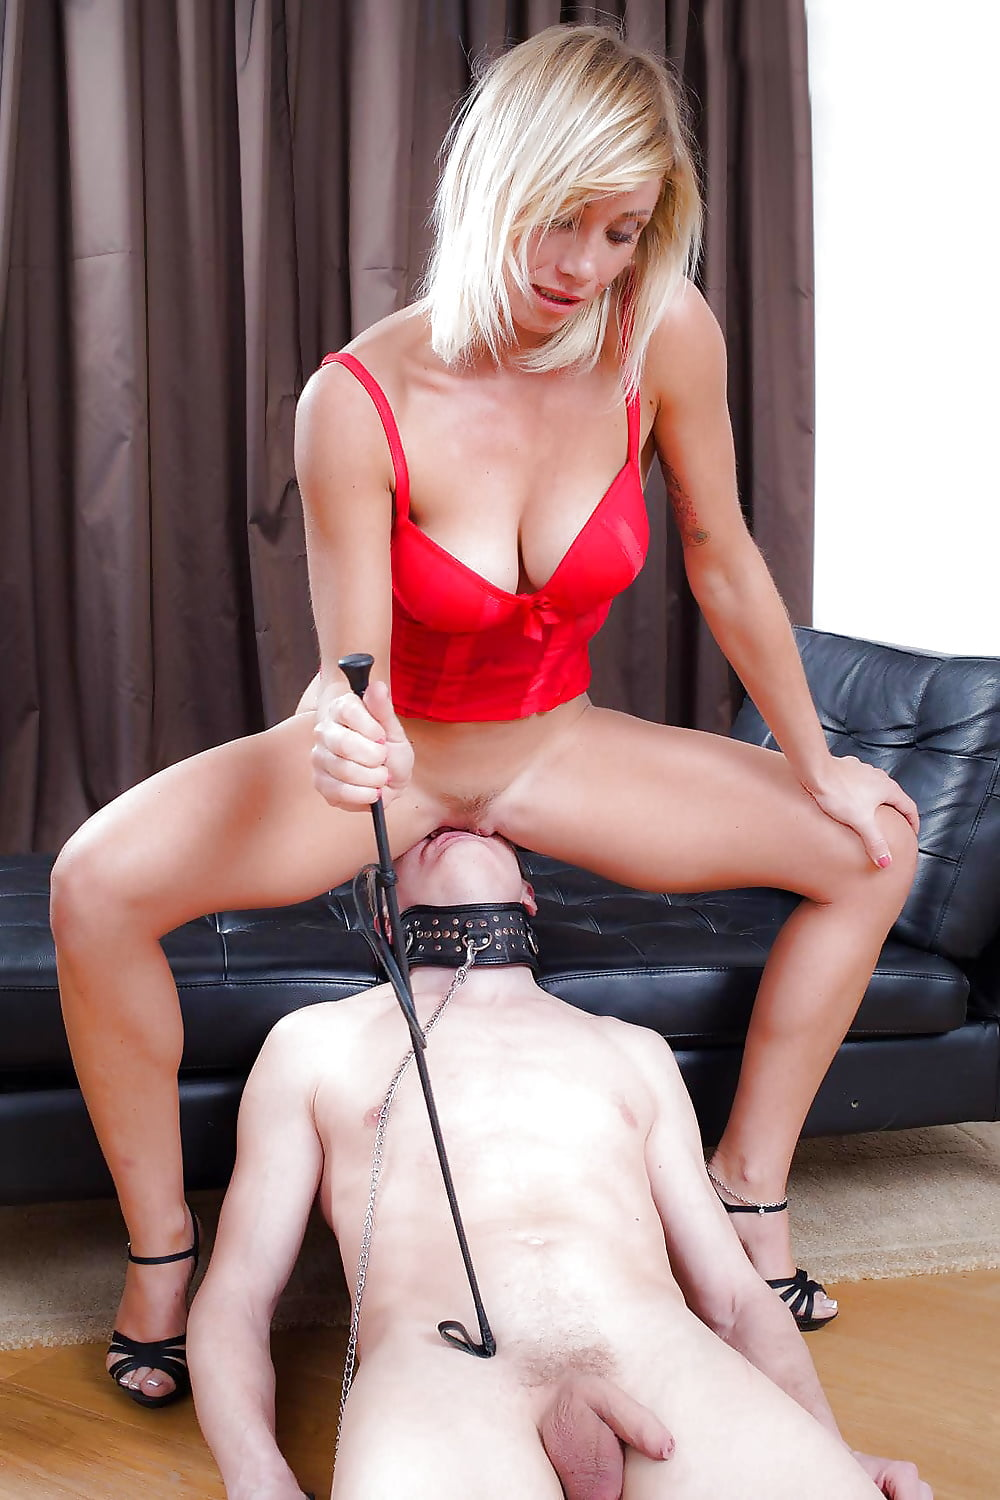 Blindfolded Slave Wife Fingered And Clit Licked